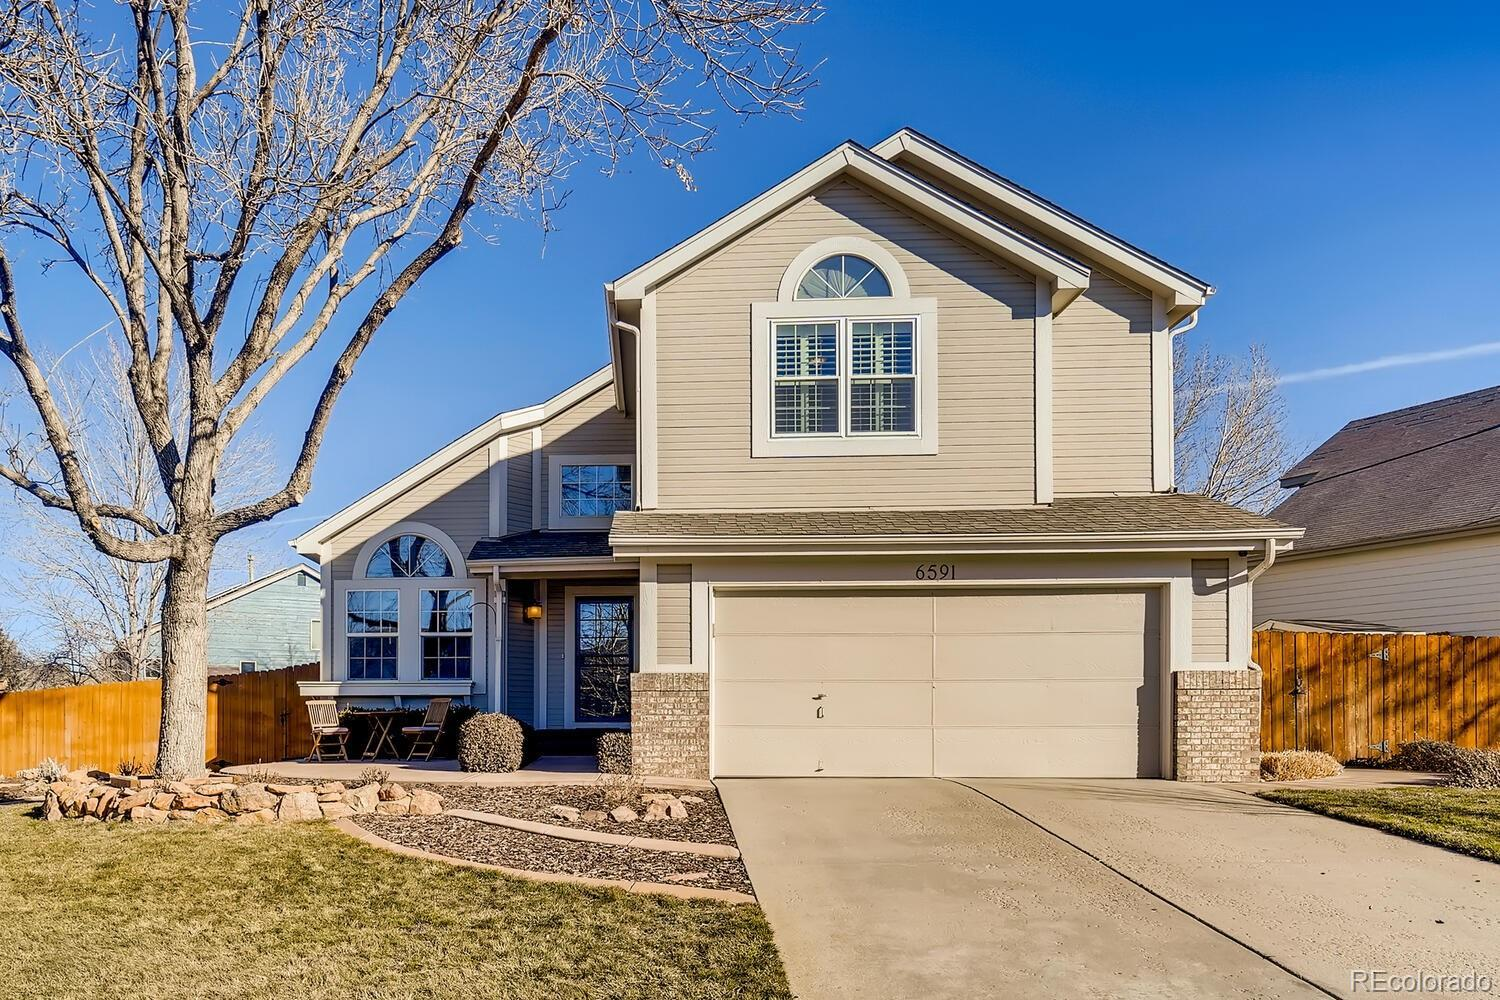 6591 W 96th Place, Westminster, CO 80021 - #: 7006086